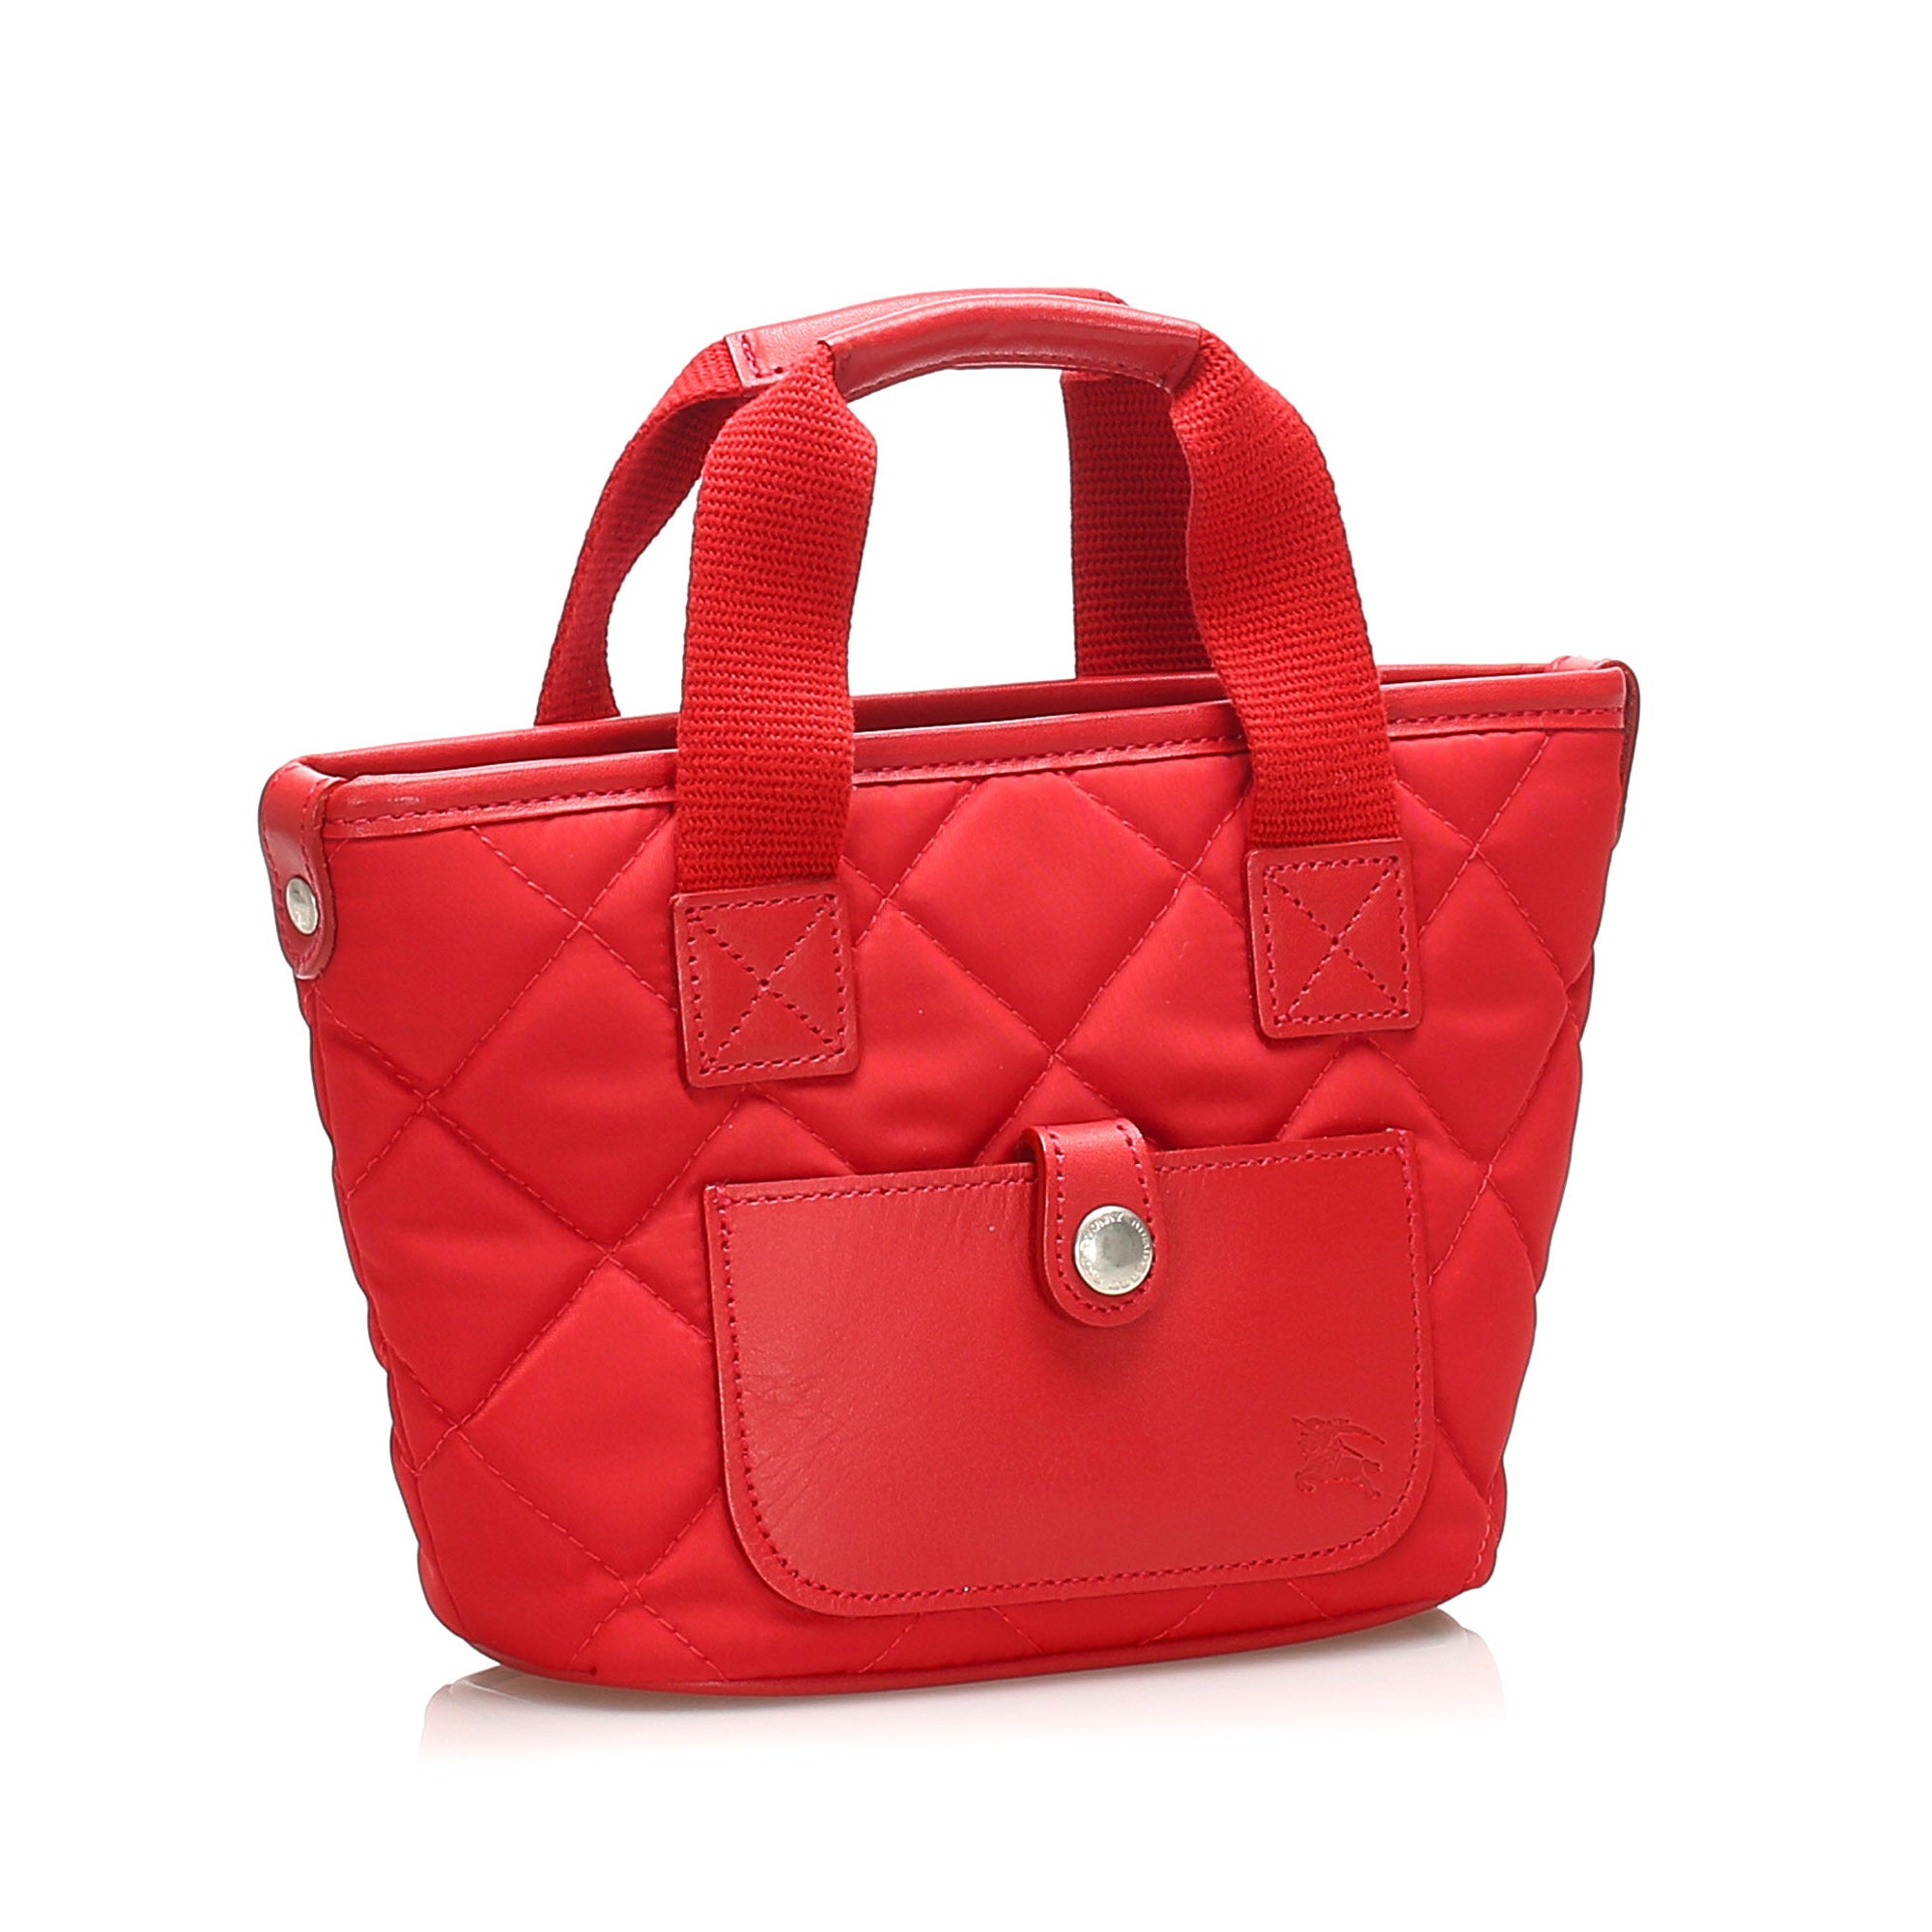 Burberry Red Quilted Nylon Handbag